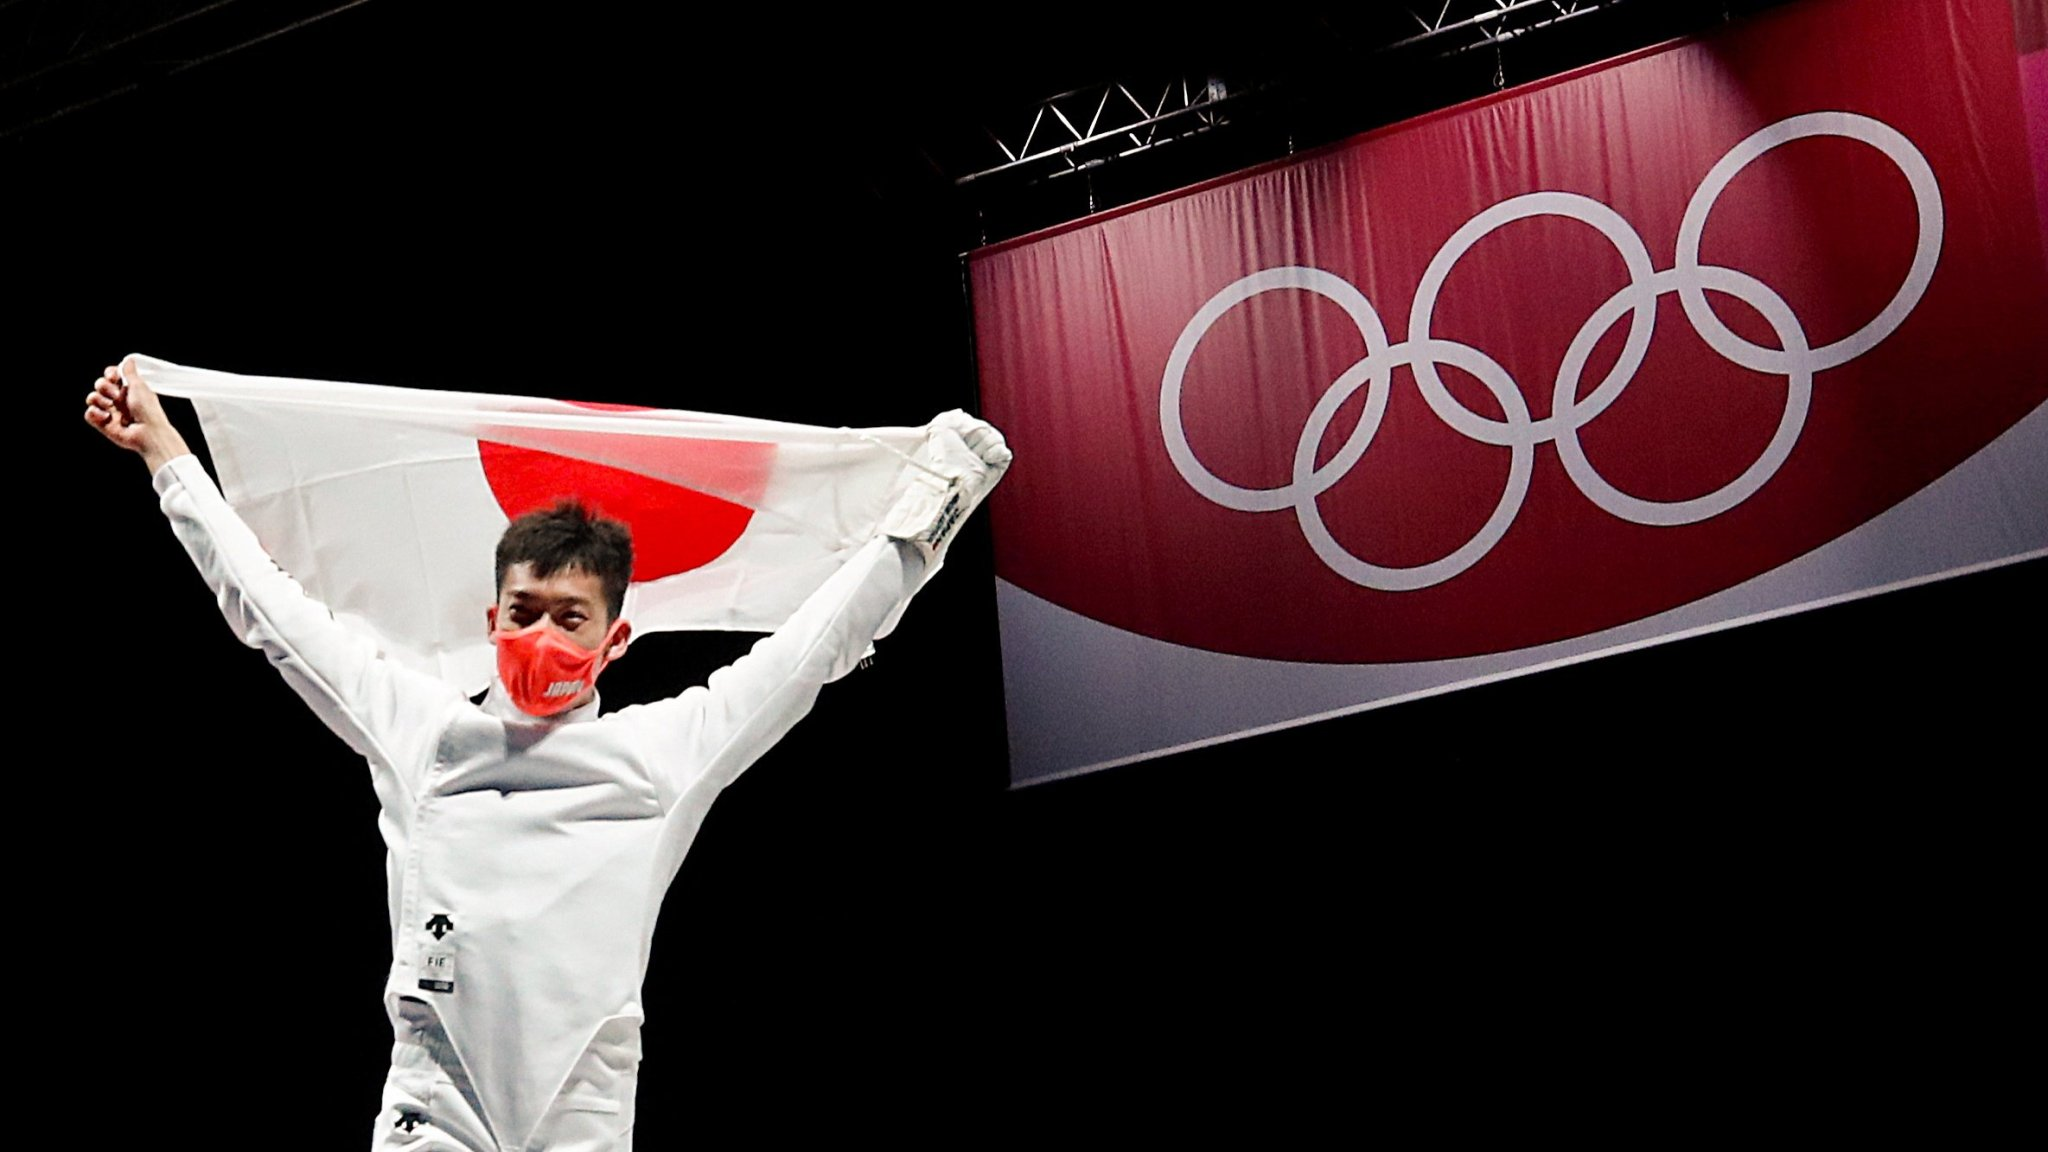 Olympics-Fencing-Underdogs Japan claim gold in men's team epee